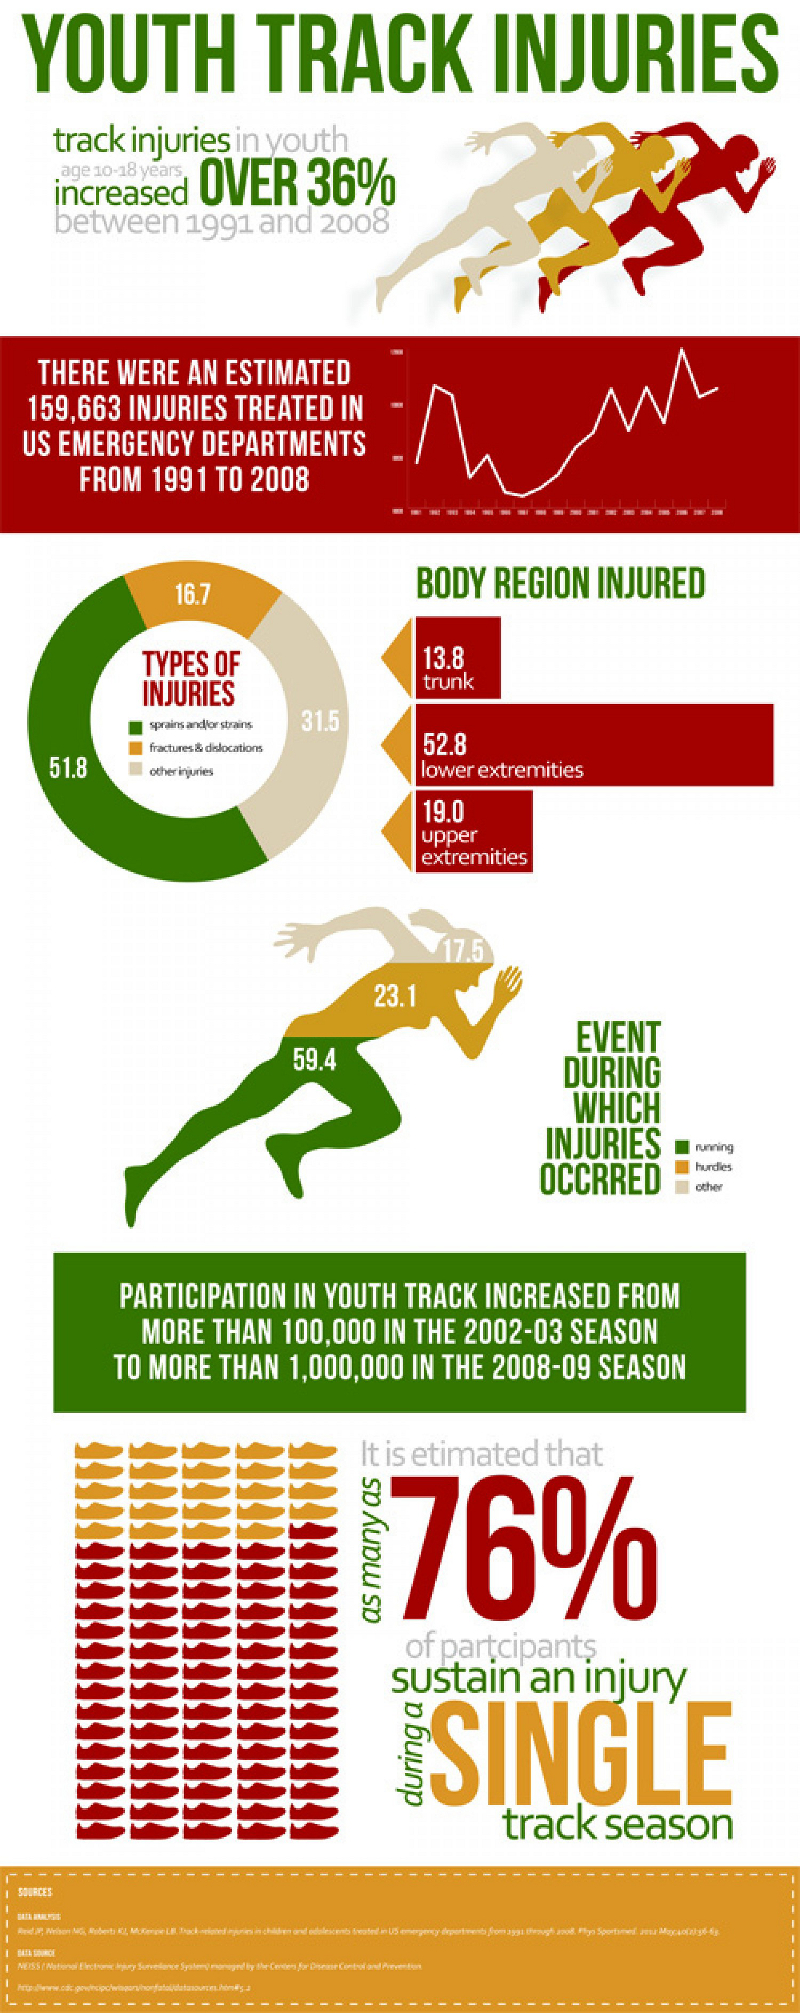 Track Injuries in Youth